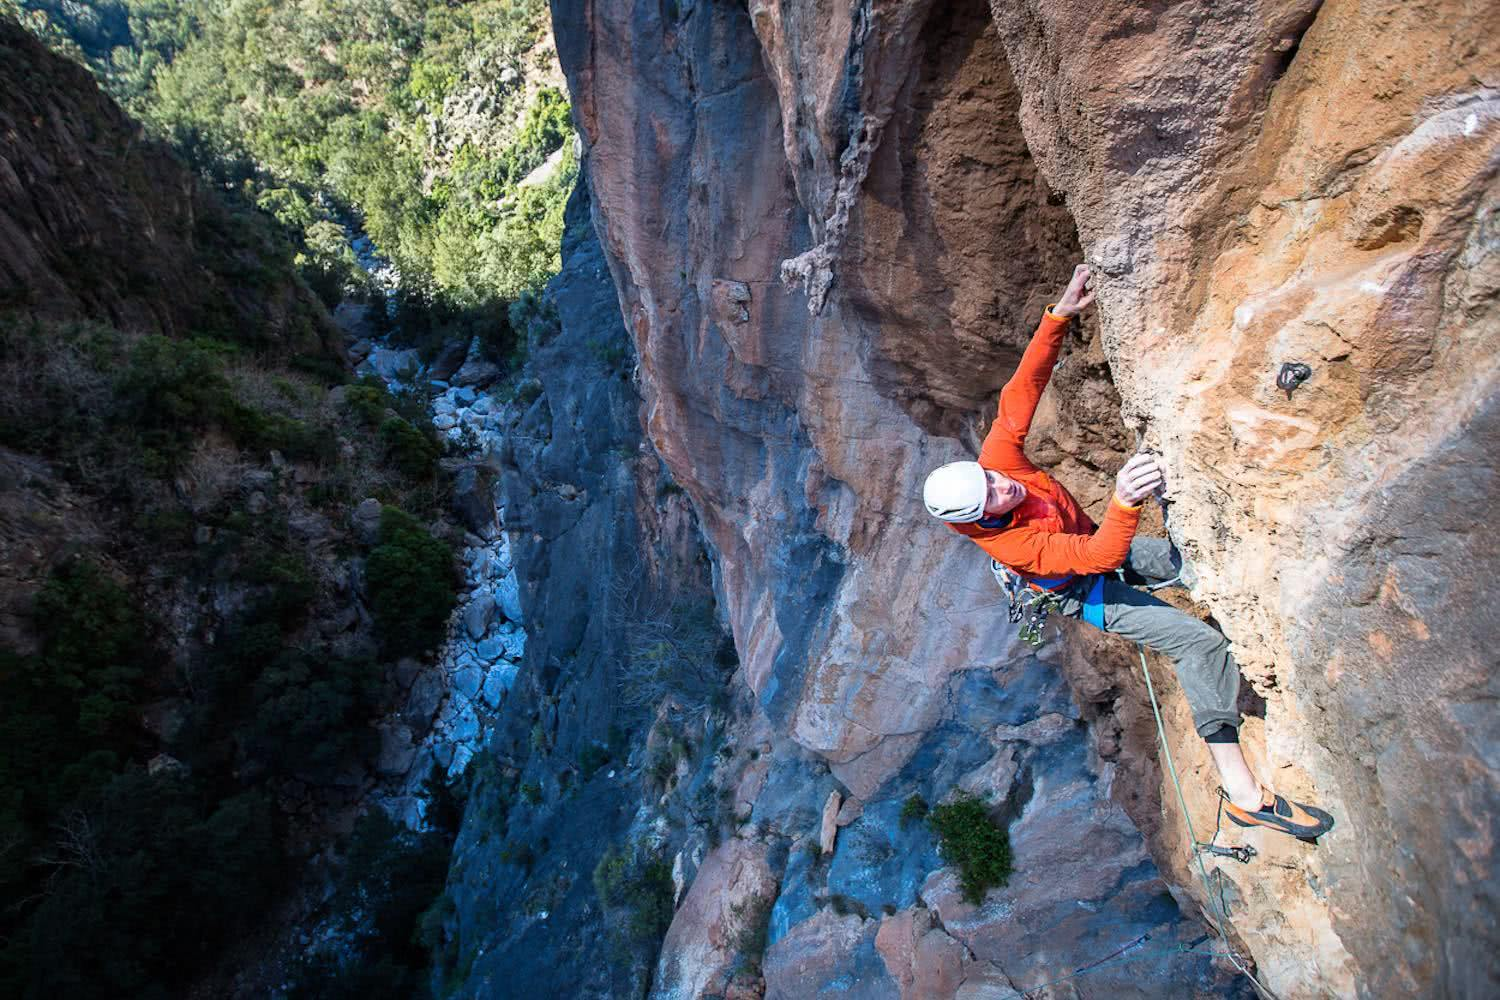 Lee Cossey, shot by Kamil-Sustiak, The North Face, Bungonia Gorge, climbing, pro climber, first ascent, sport